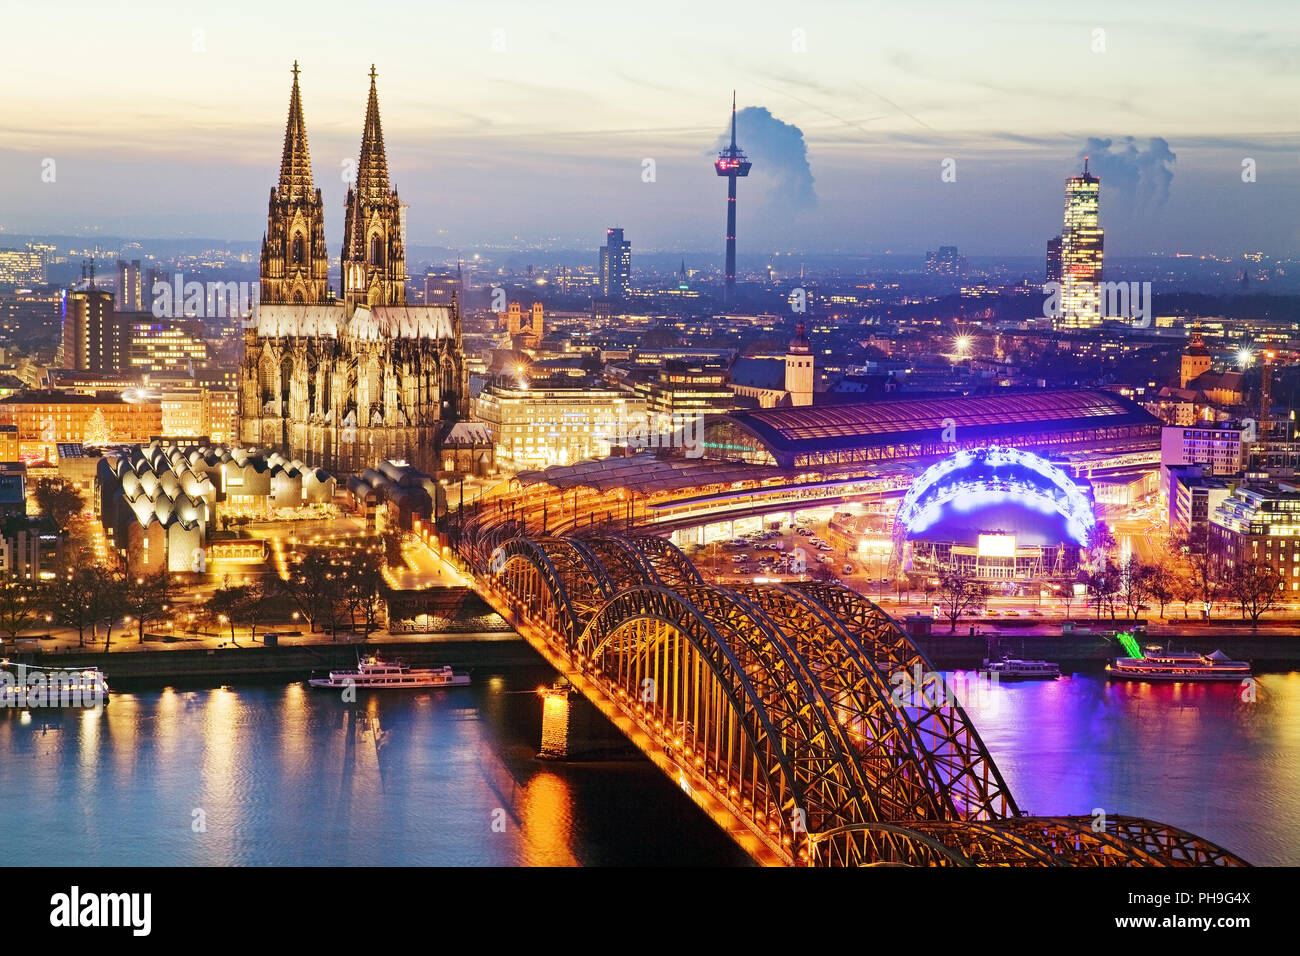 cityscape of Cologne with cathedral and brigde over Rhine at sunset, Cologne, Germany, Europe - Stock Image